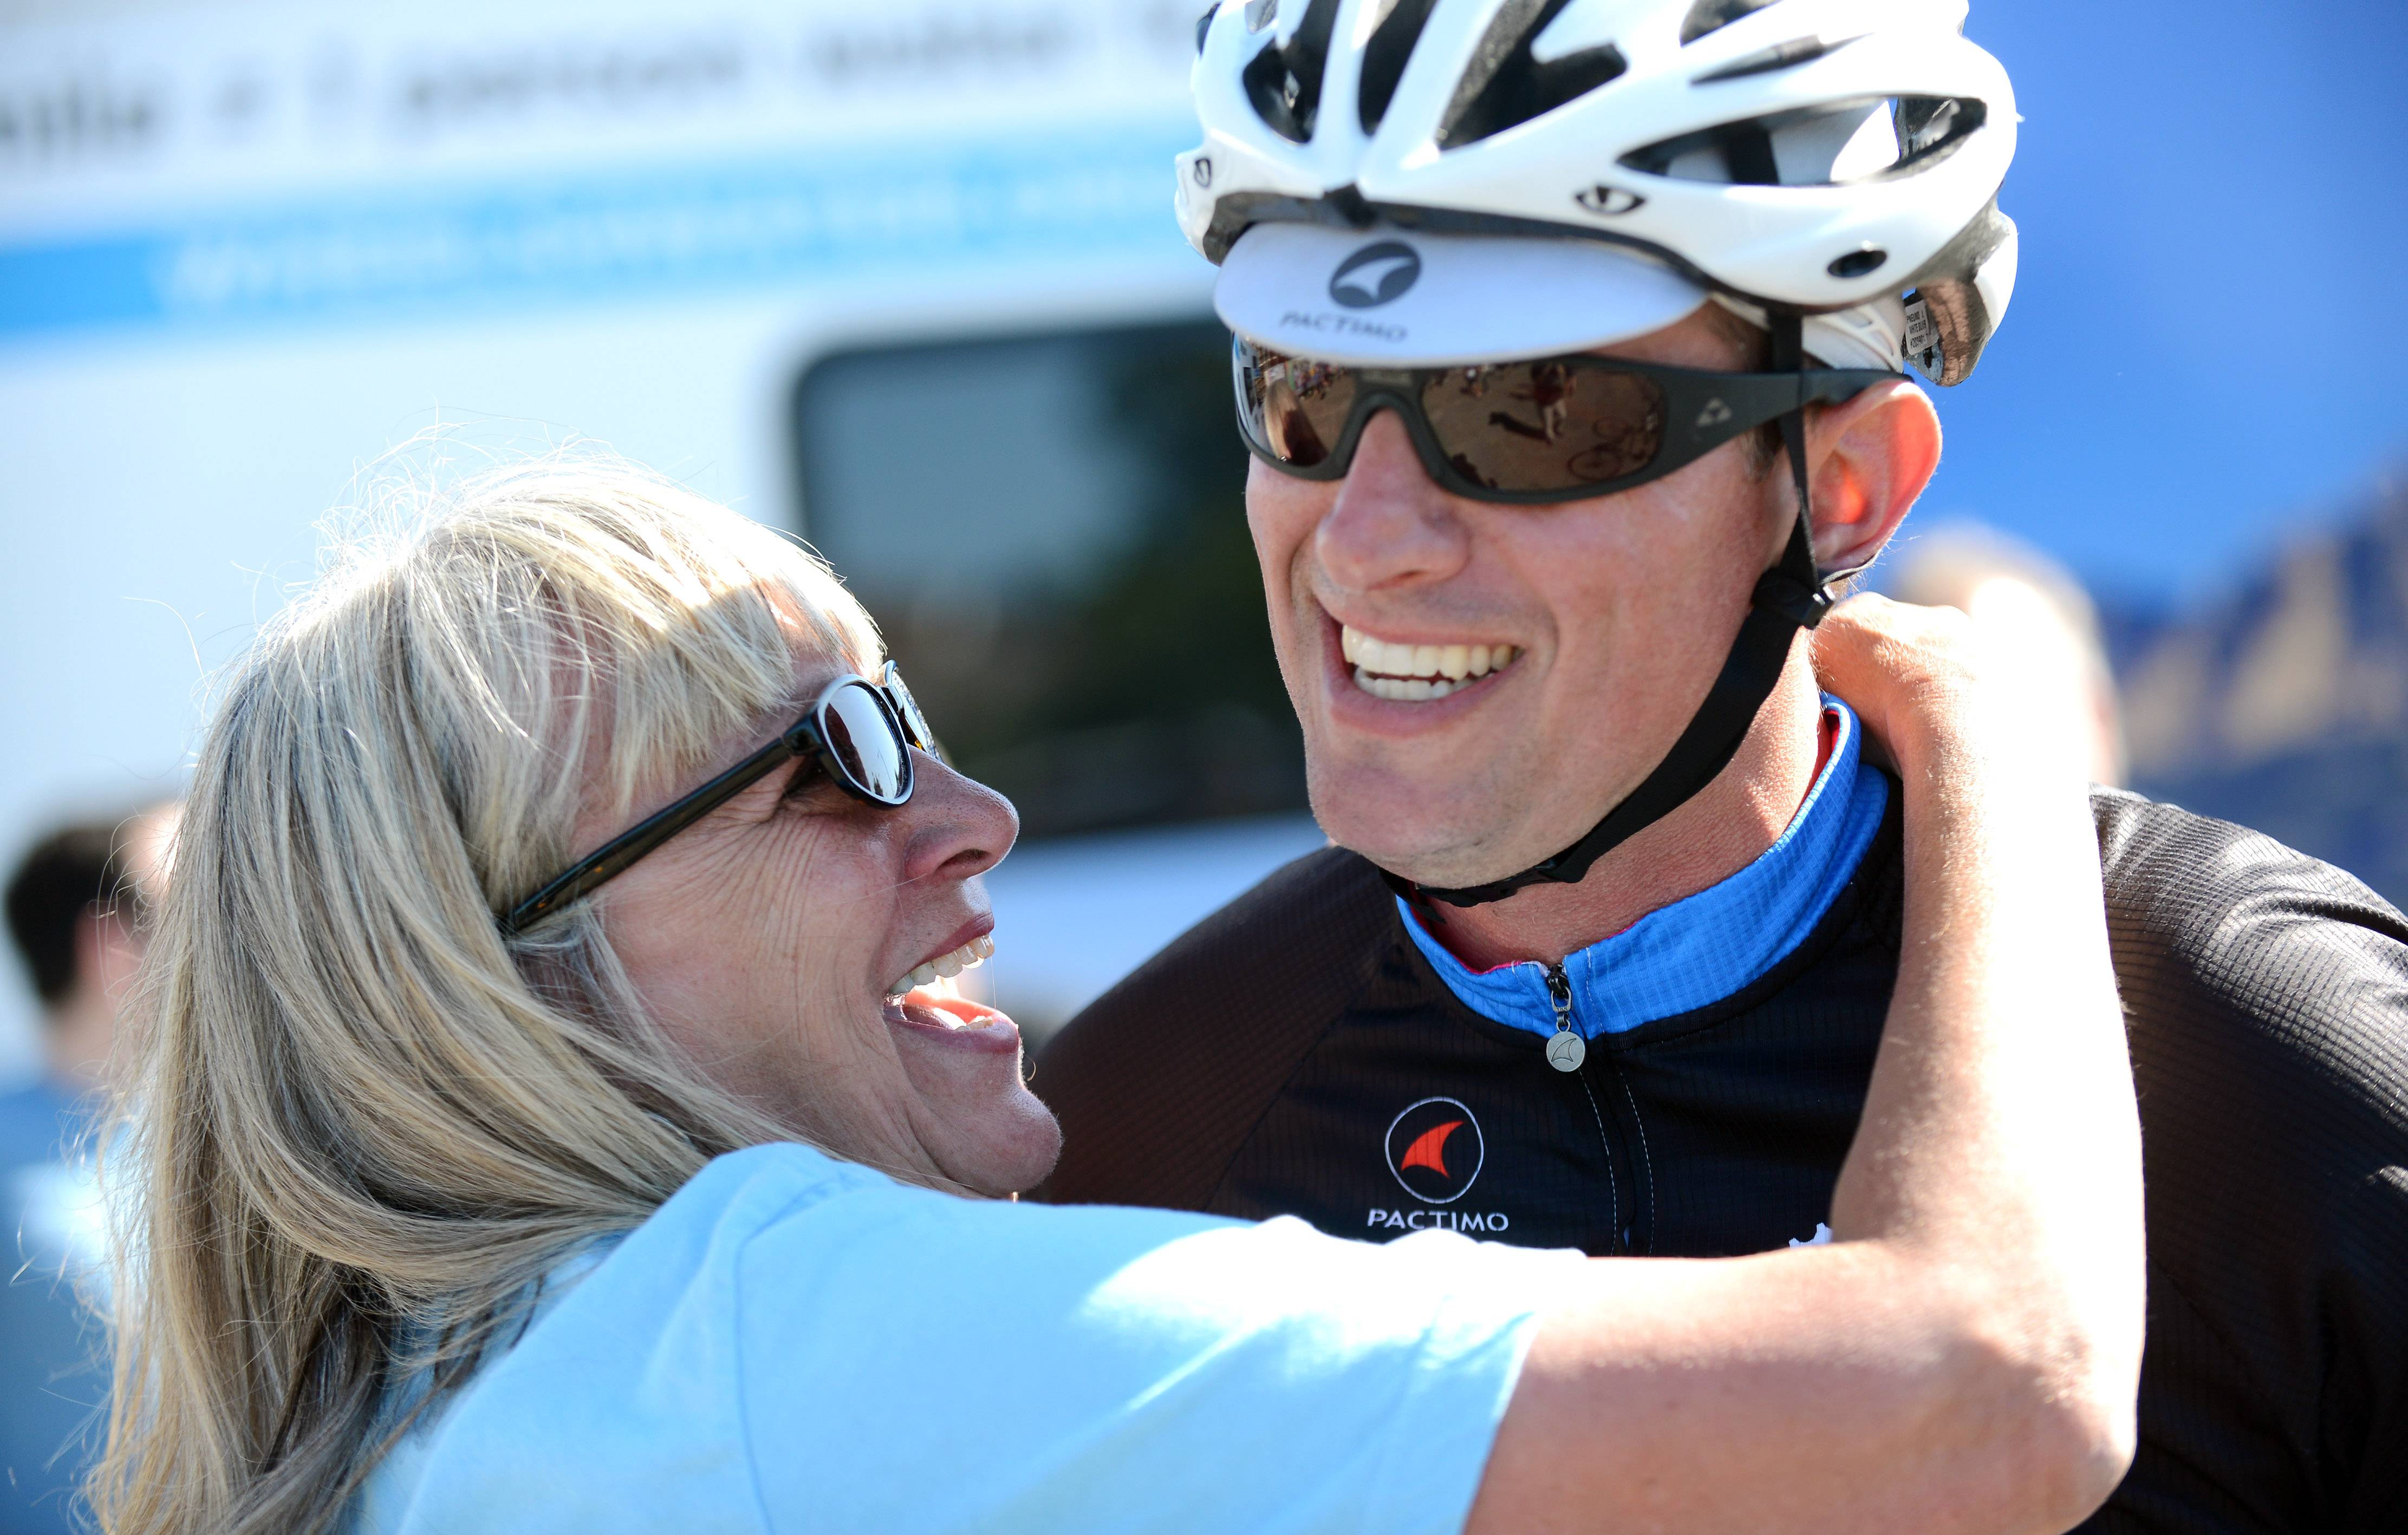 Justin Ahrens of Batavia gets a hug from his mom, Nancy Brenczski, of Joliet, after finishing the 15-day Wheels4Water bike ride earlier this month. The ride started in Boston and ended 1,207 miles later in Chicago. Ahrens and his team raised more than $93,000, which will provide water for life for more than 2,300 people in Lira, Uganda.